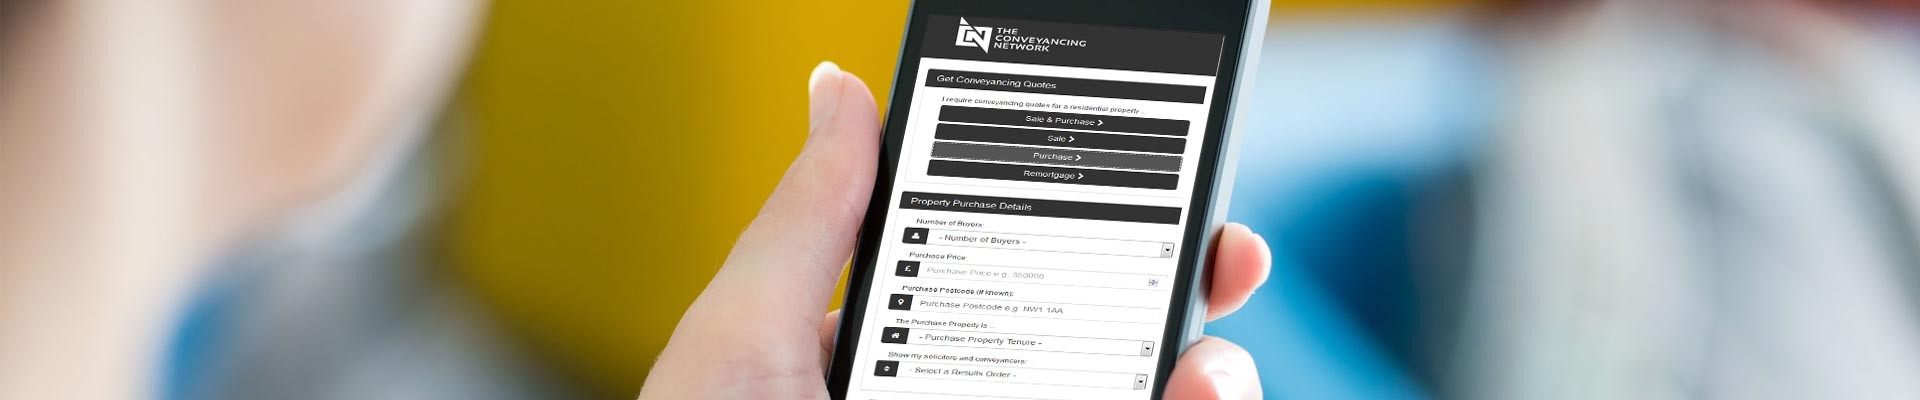 Mobile Quote Engine for Solicitors and Conveyancers